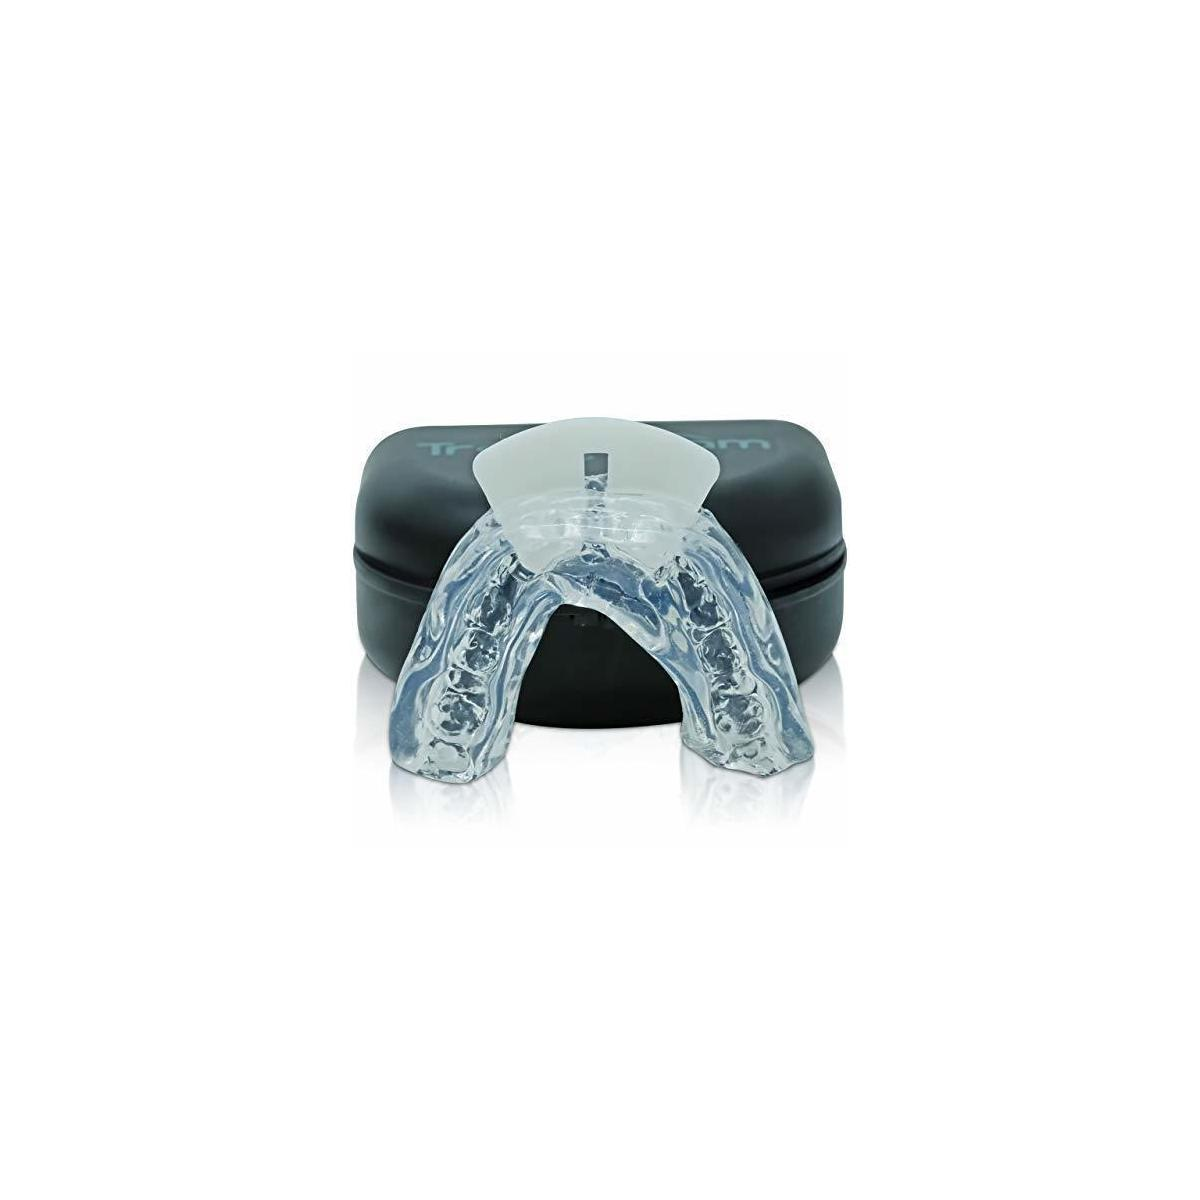 Tranquillam Sleep Custom Molded Night Mouth Guard- Sleep Aid - Fit To Cure Your Worst Nights Sleep! Designed By Tranquillam Sleep